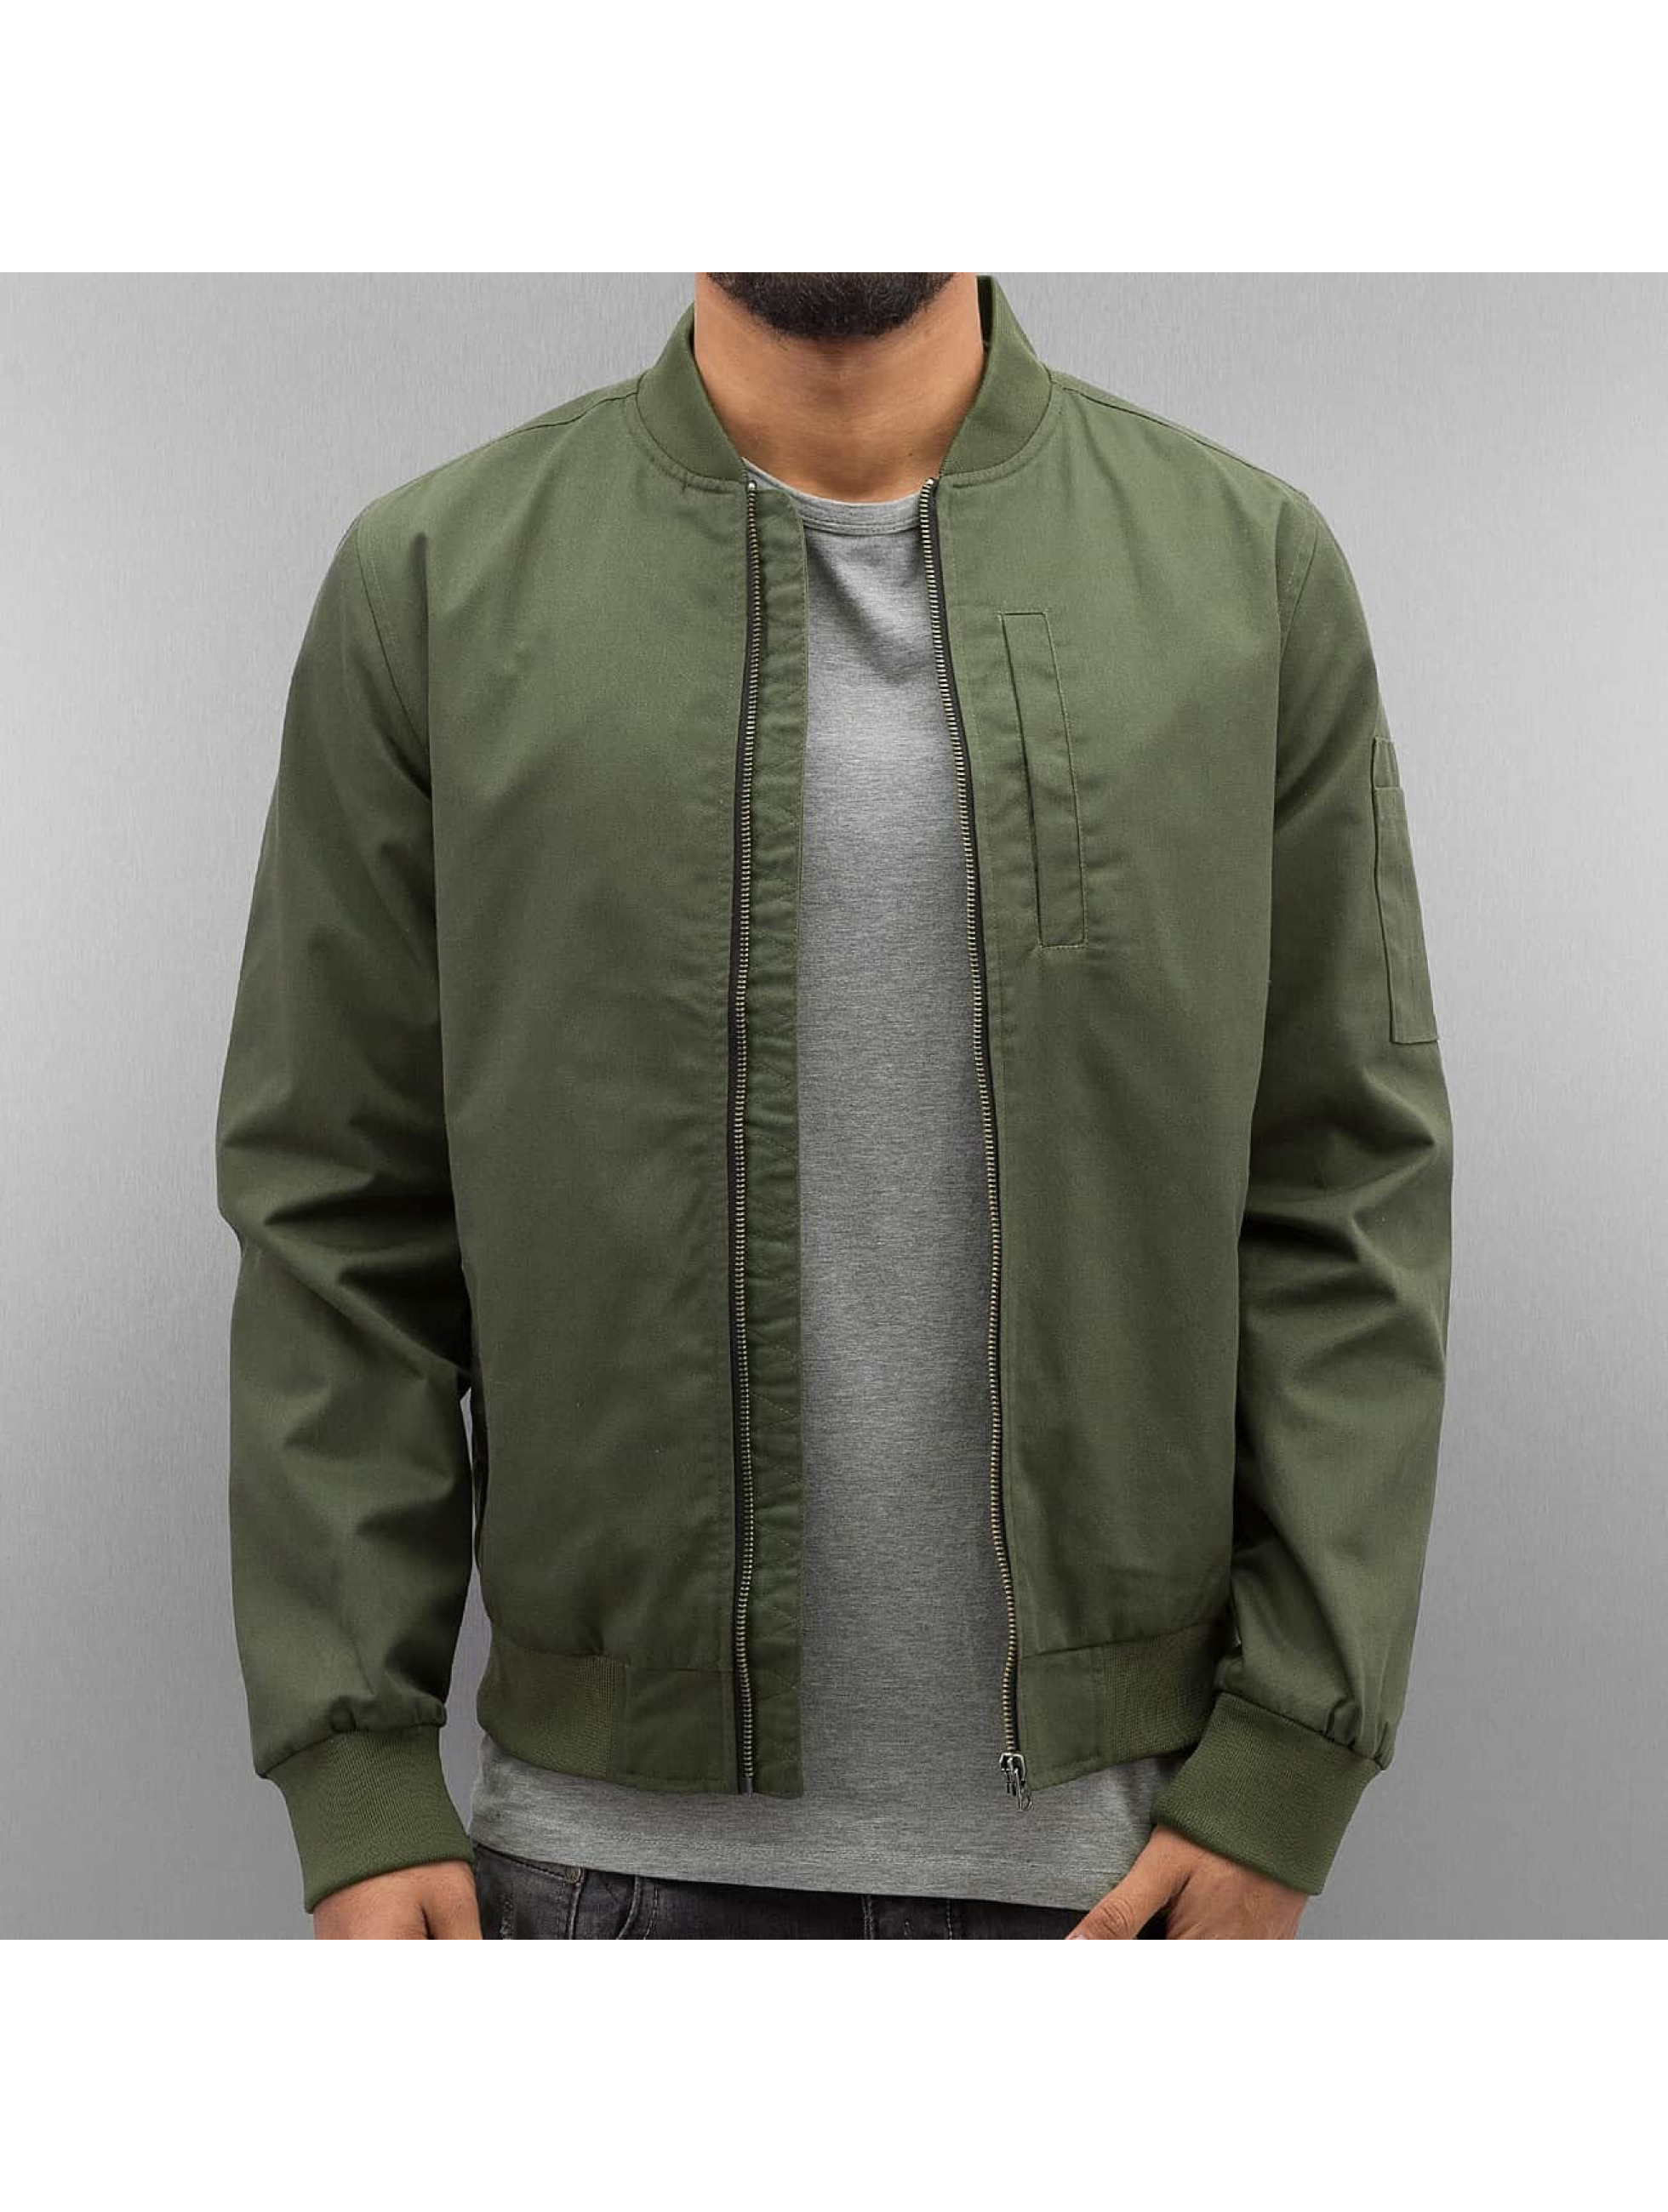 SHINE Original Bomber jacket Rex green